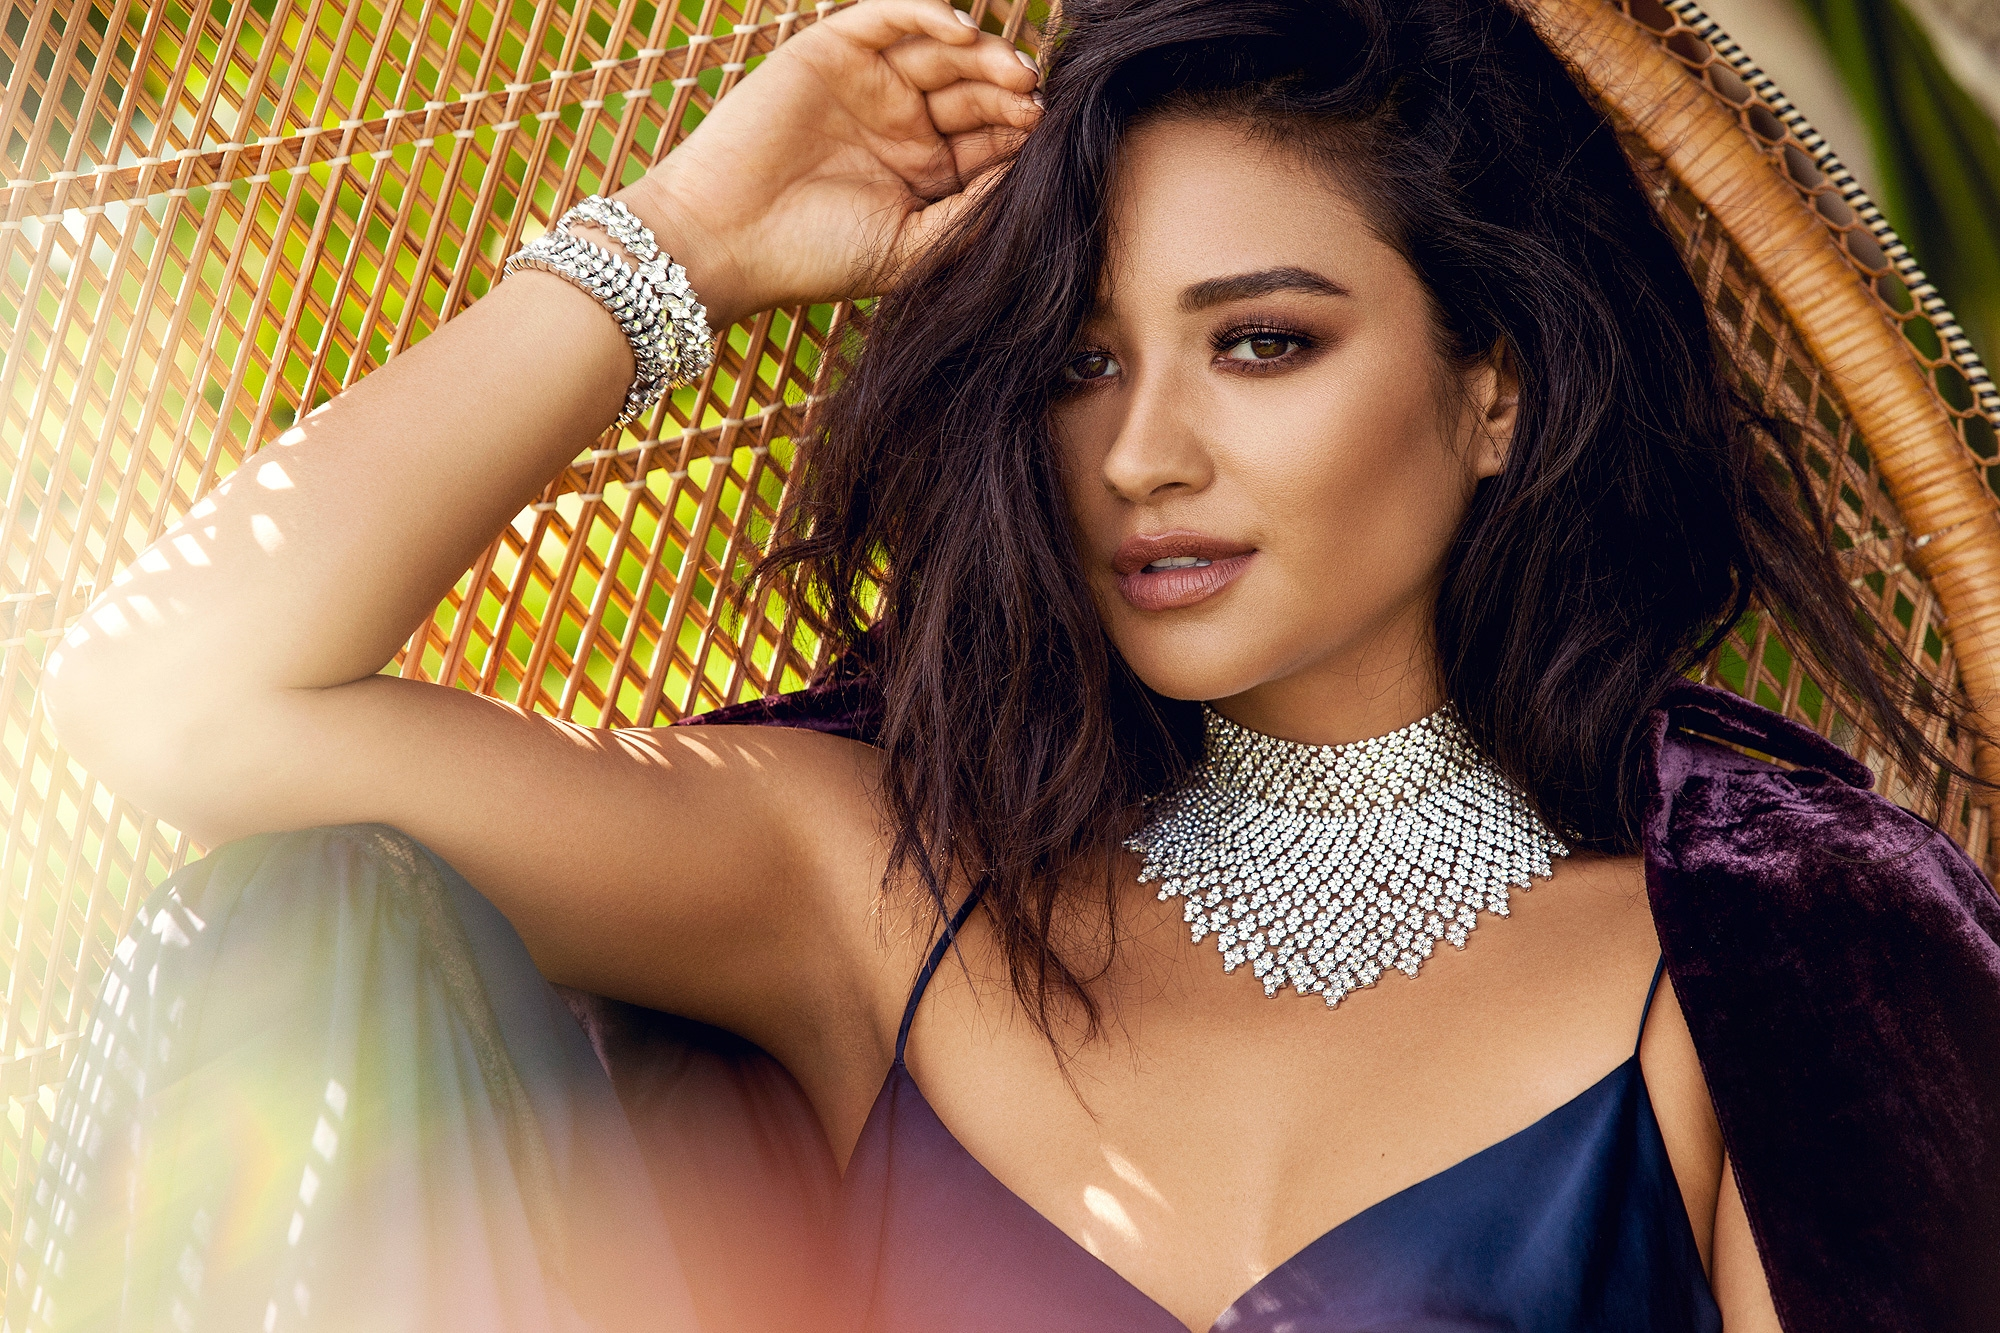 SHAY MITCHELL - Actress / Model